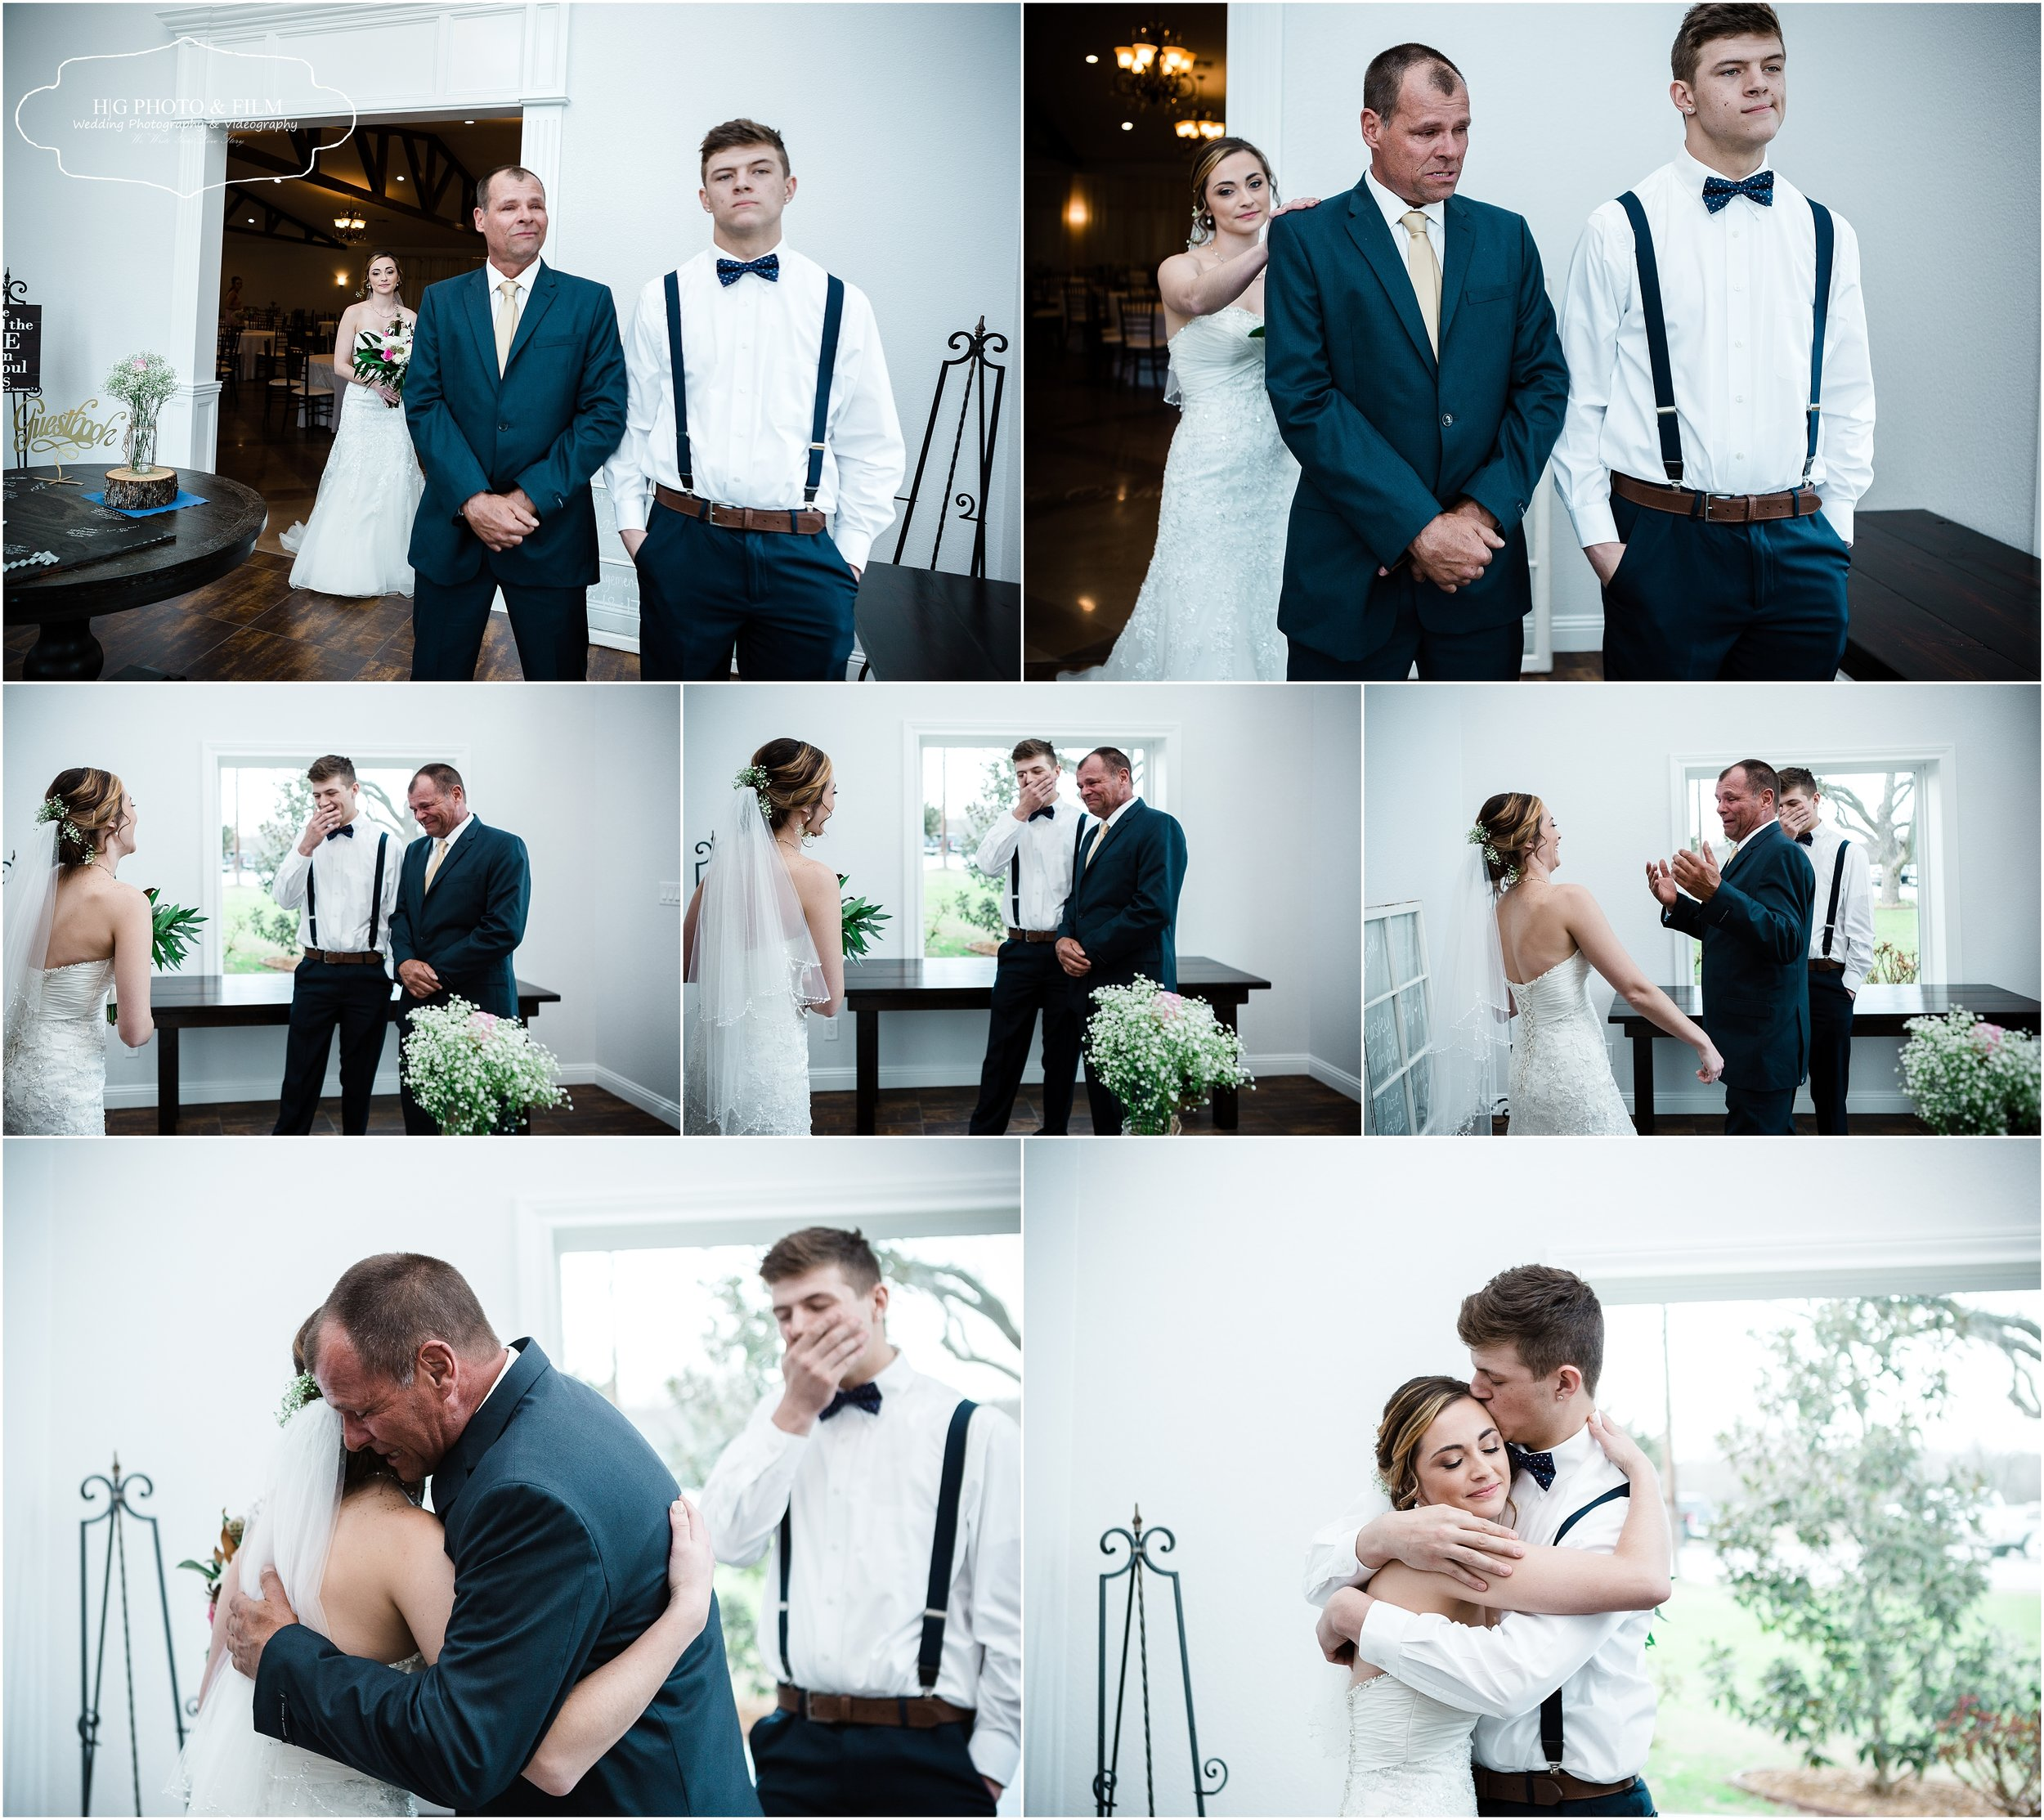 And then step father and brother. Such a special moment. Love capturing these moments!